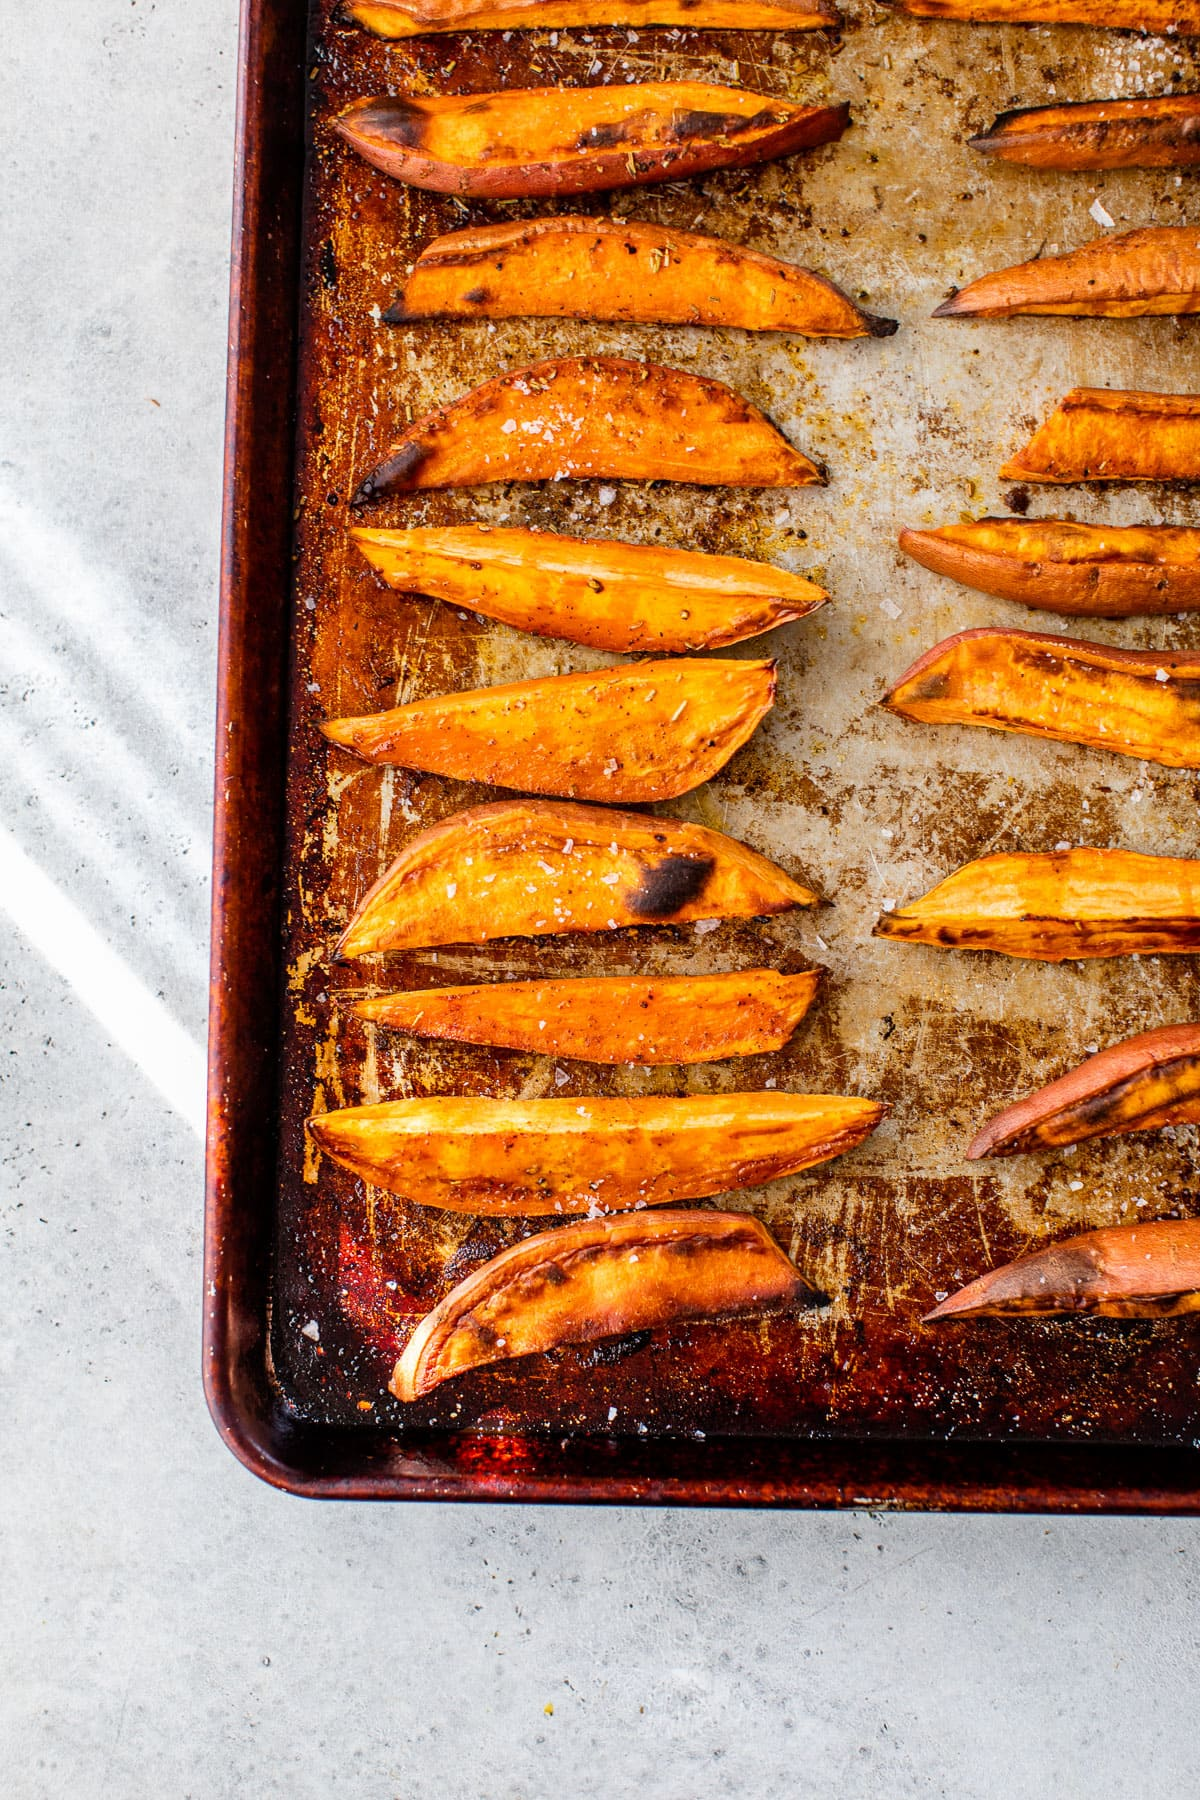 A baking sheet with baked vegetables